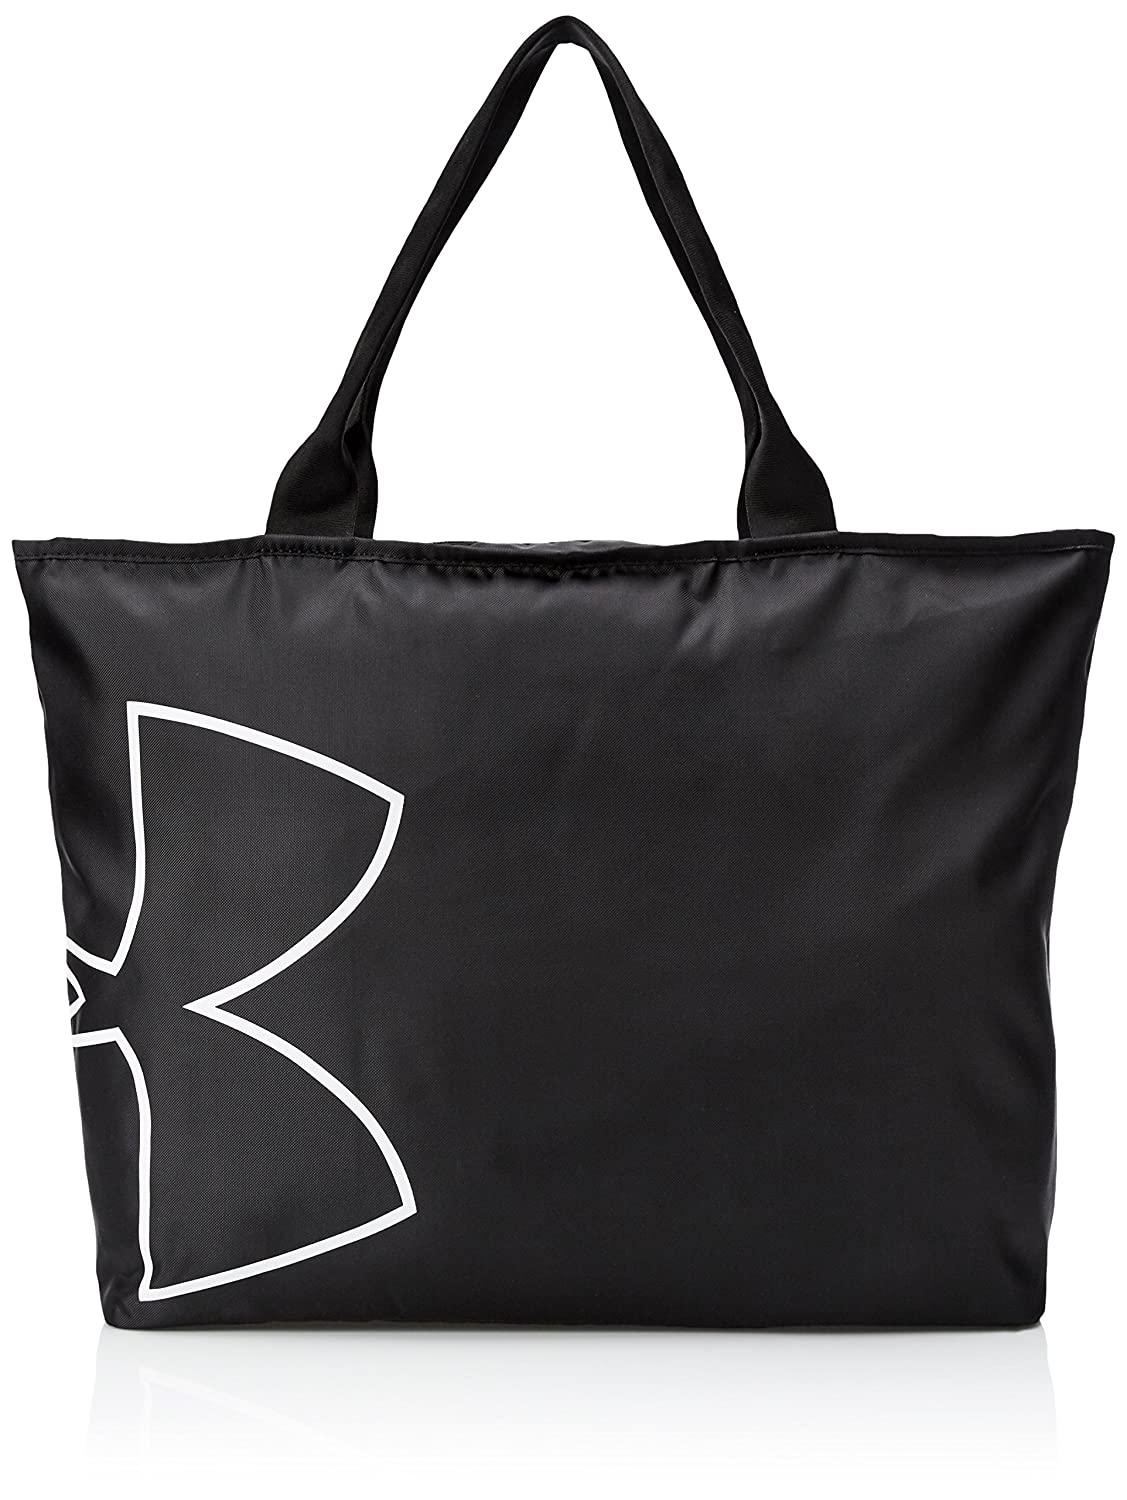 d7810b4d9e3f Amazon.com  Under Armour Women s Big Logo Tote  Under Armour  Sports    Outdoors